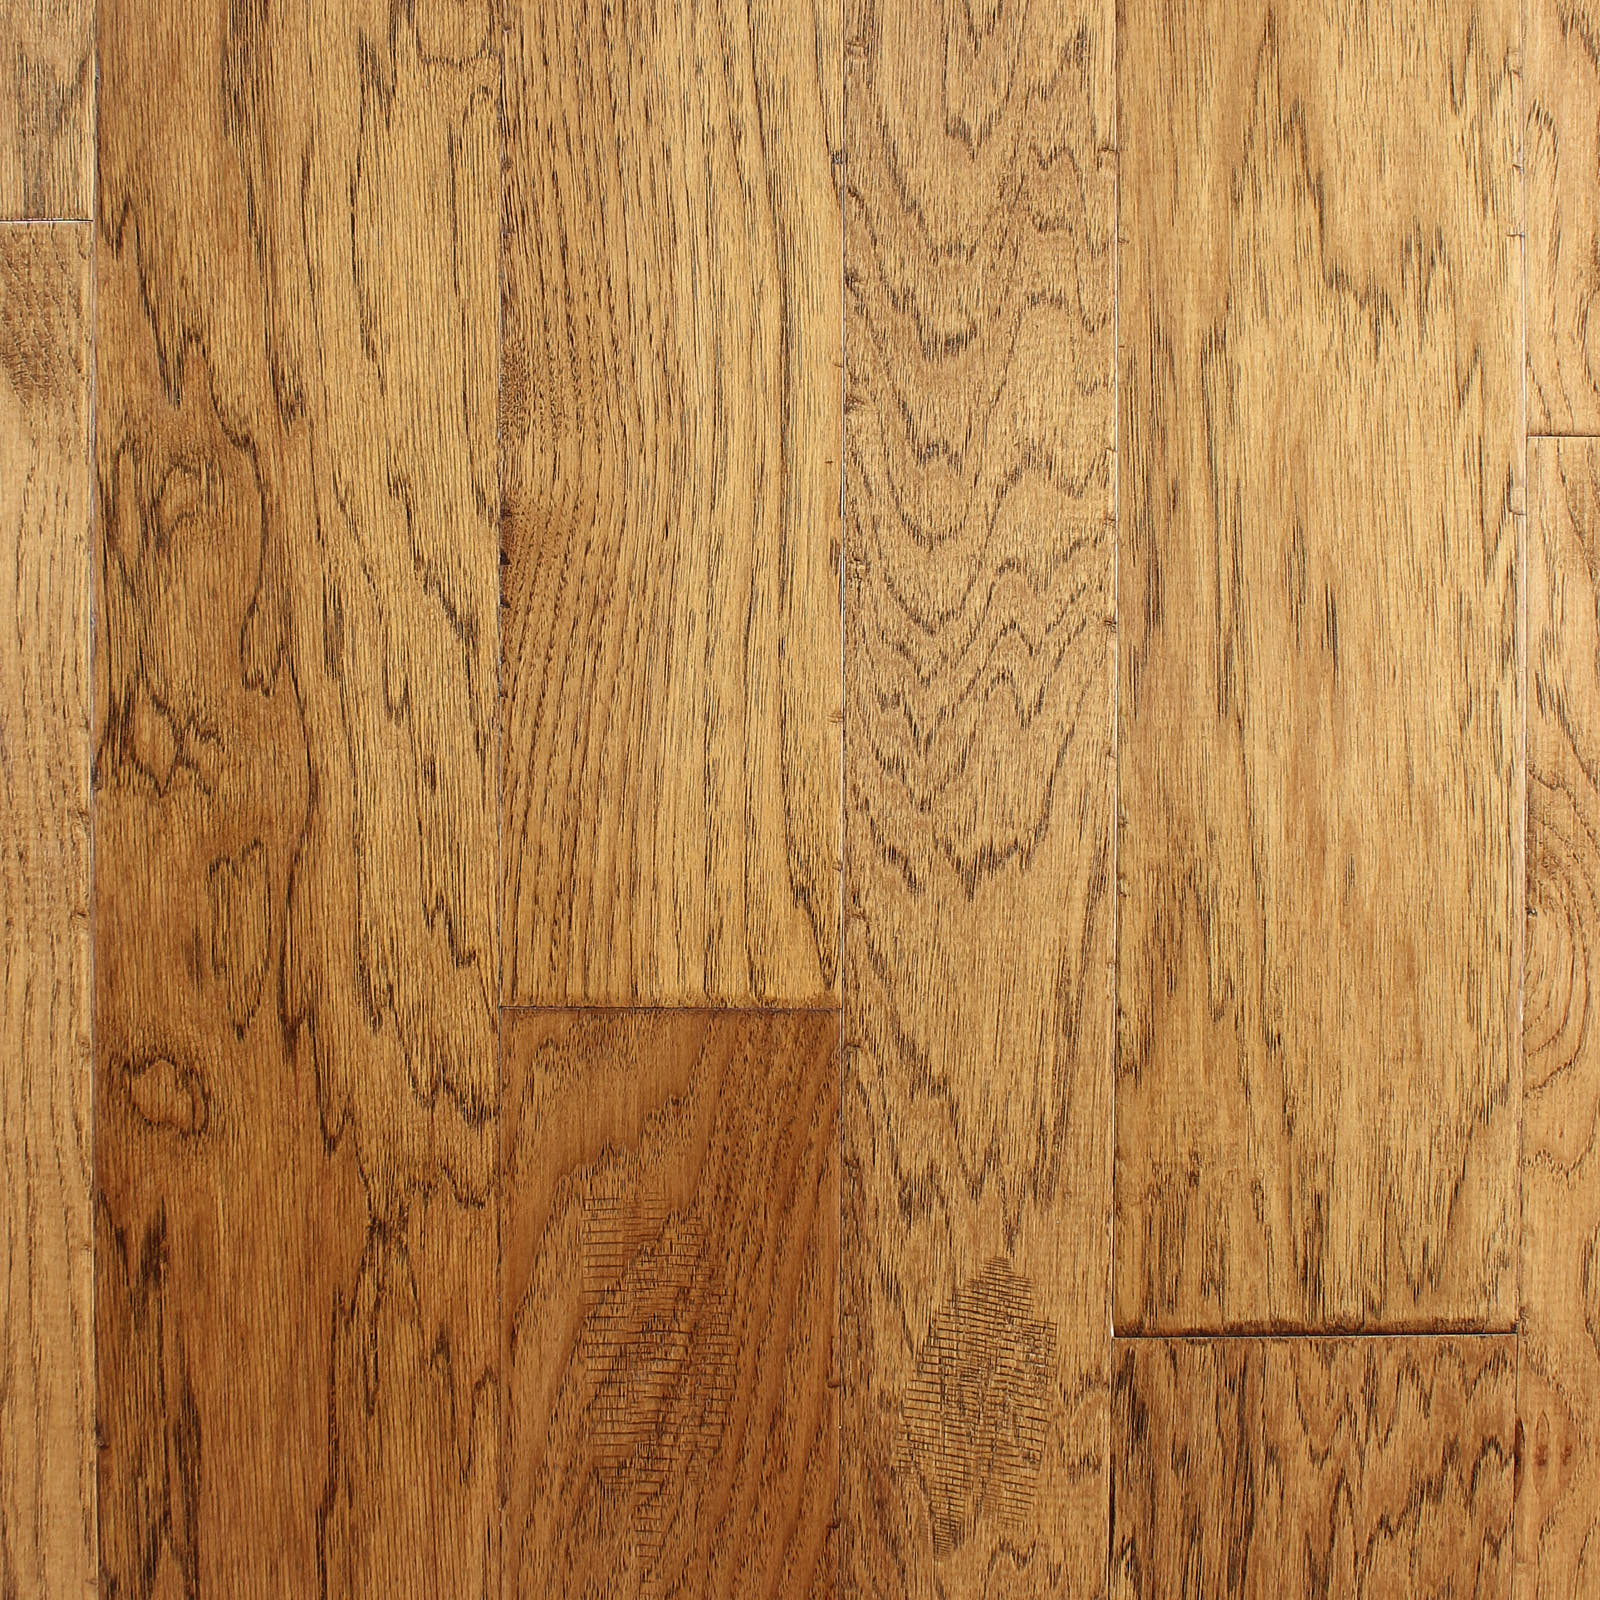 Stony Brook Meza Engineered Hardwood Flooring